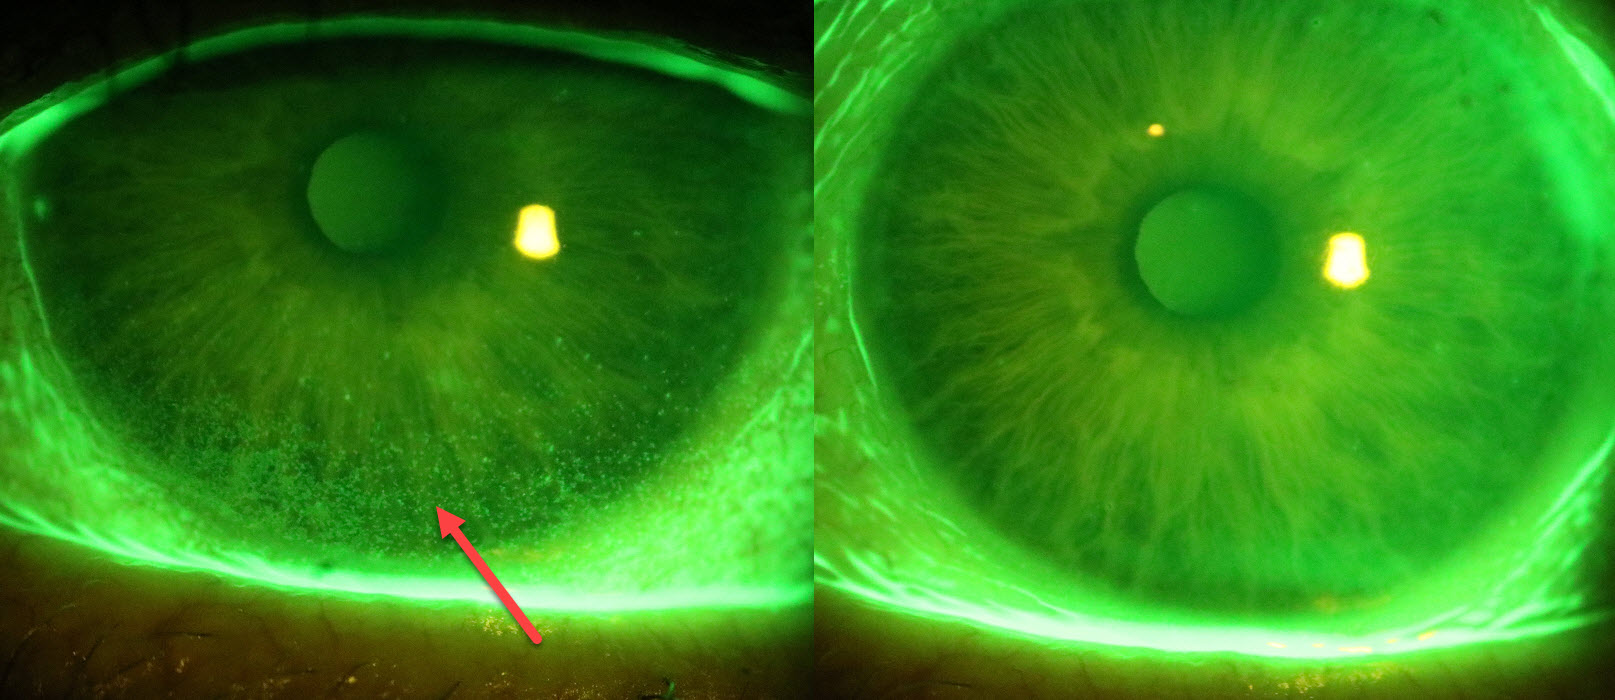 The improvement in this lady's corneal health following IPL treatment. The left photo before treatment shows the significant ocular surface damage as seen by a diagnostic dye (speckled area arrow). This damage is all healed following IPL treatment (right).